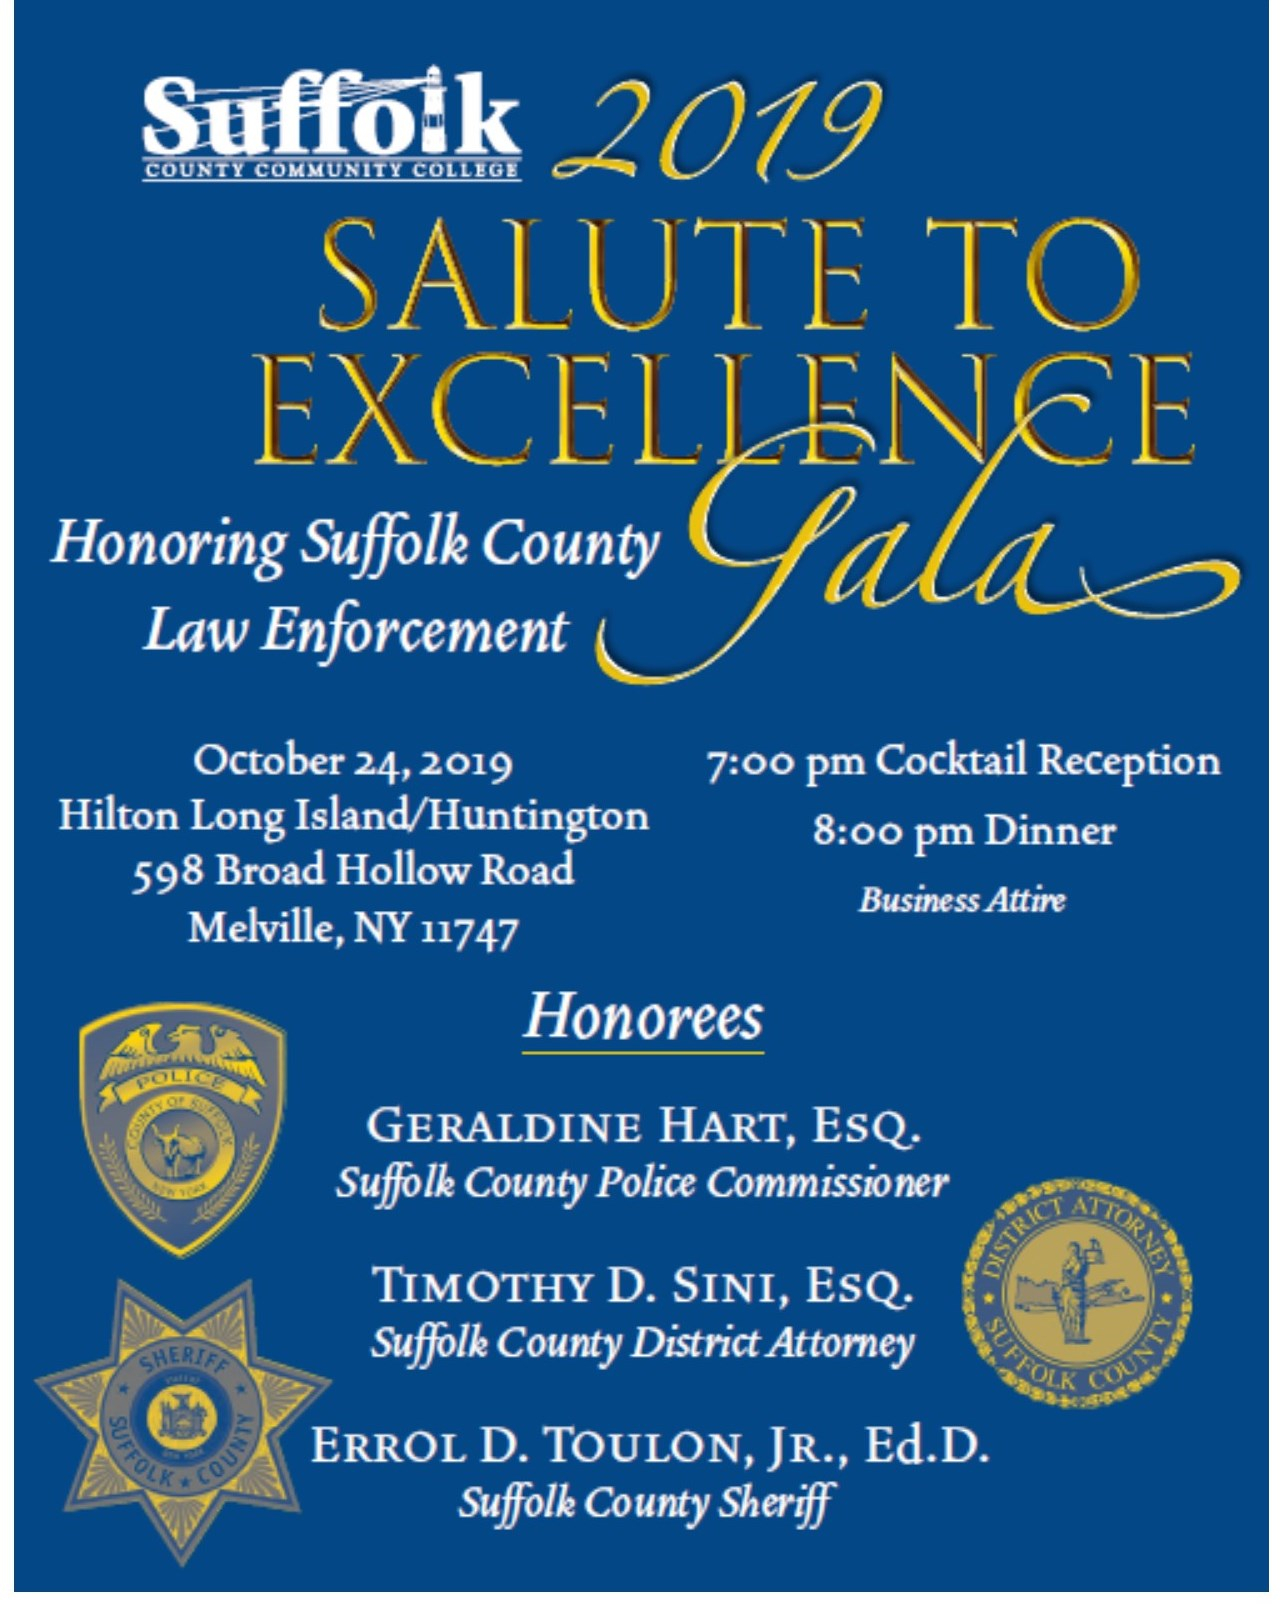 Foundation Events Salute To Excellence – Suffolk Community Within Suffolk Community College Academic Calendar